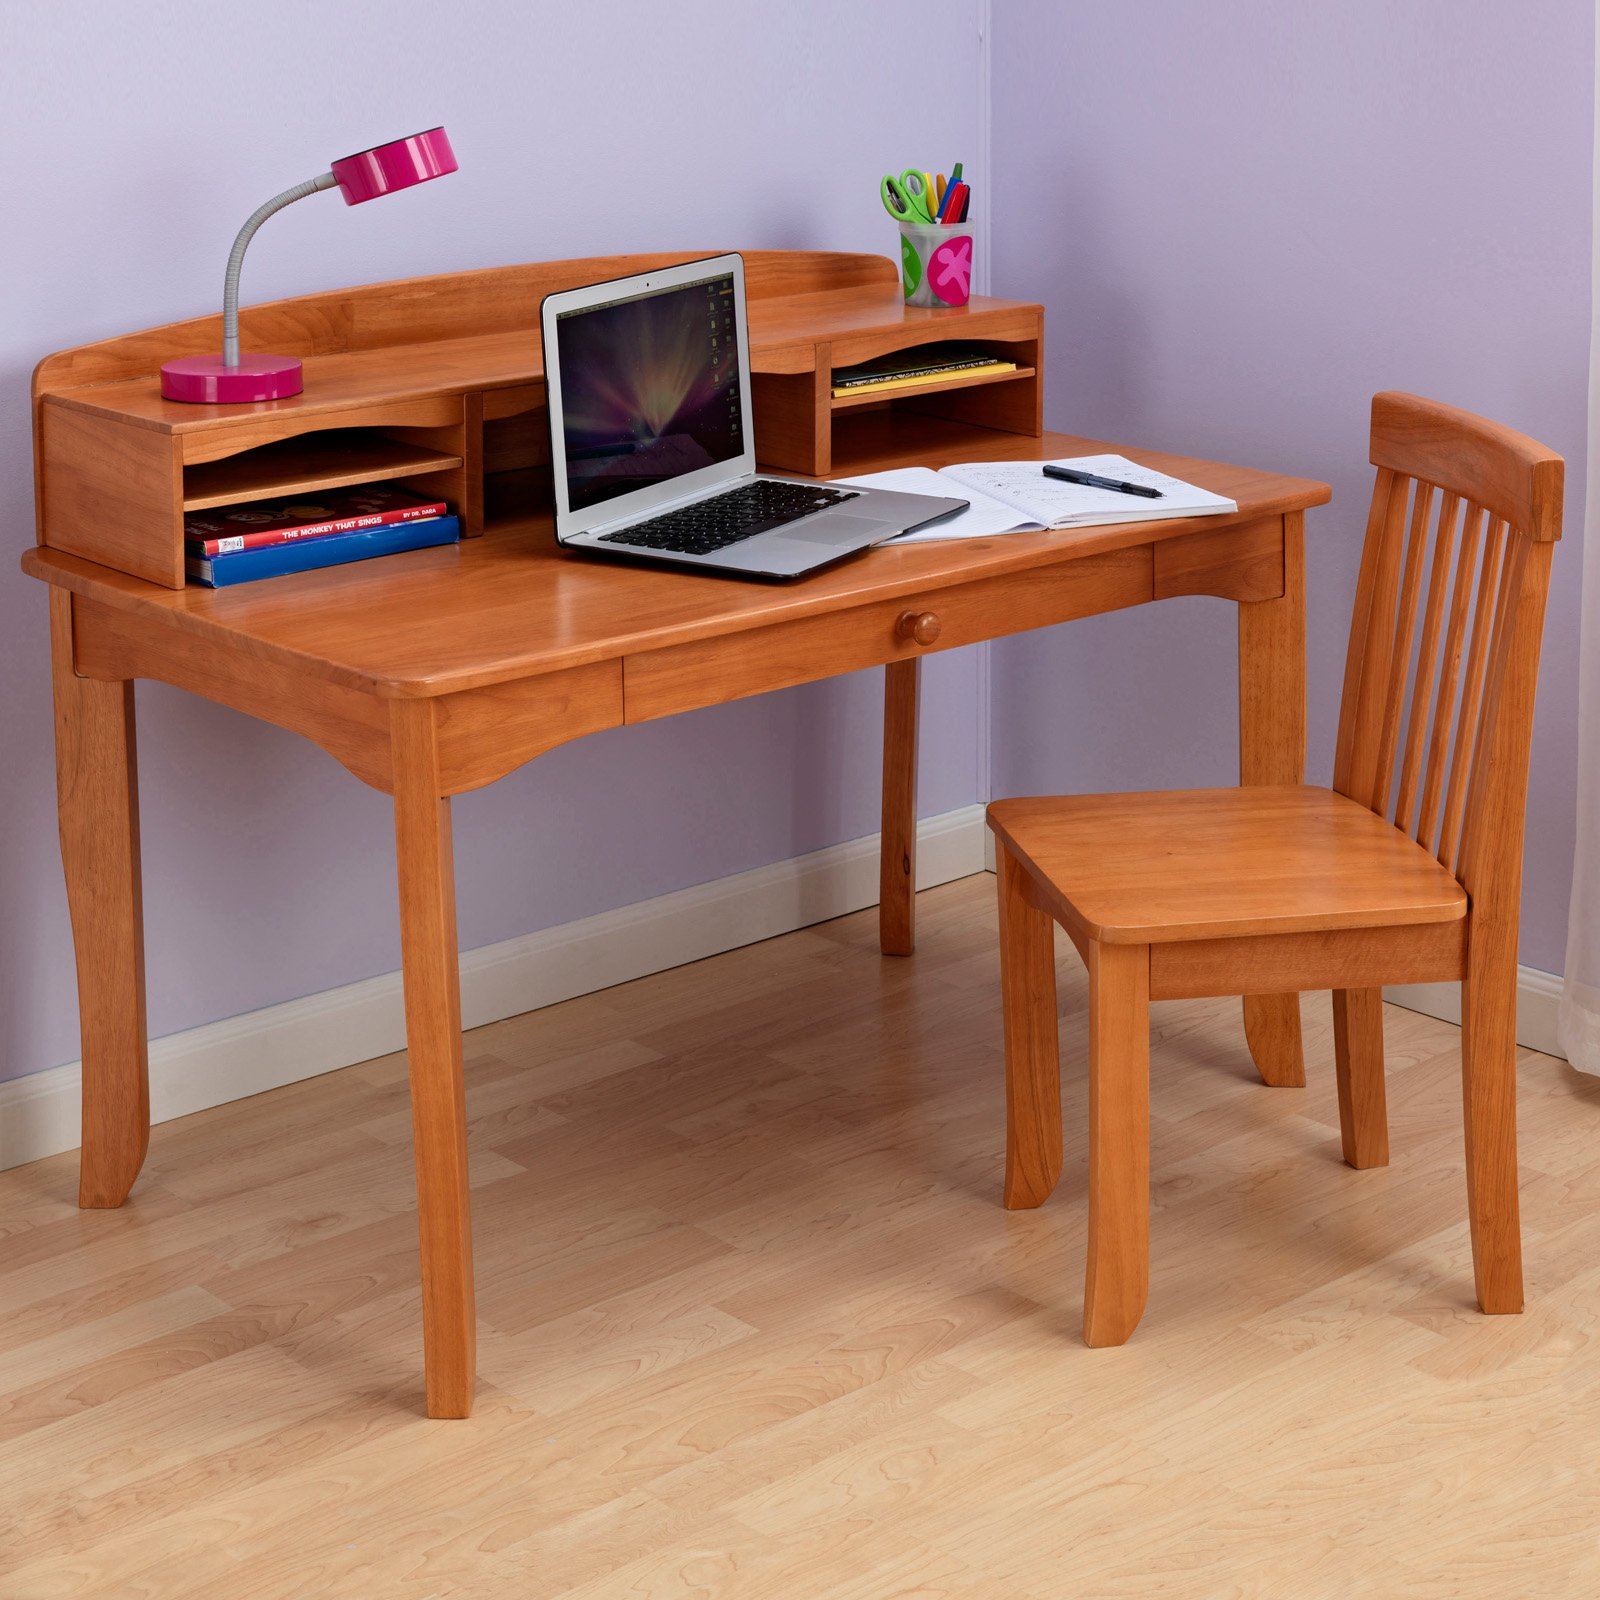 Kid desk with chair design homesfeed for Chair with storage